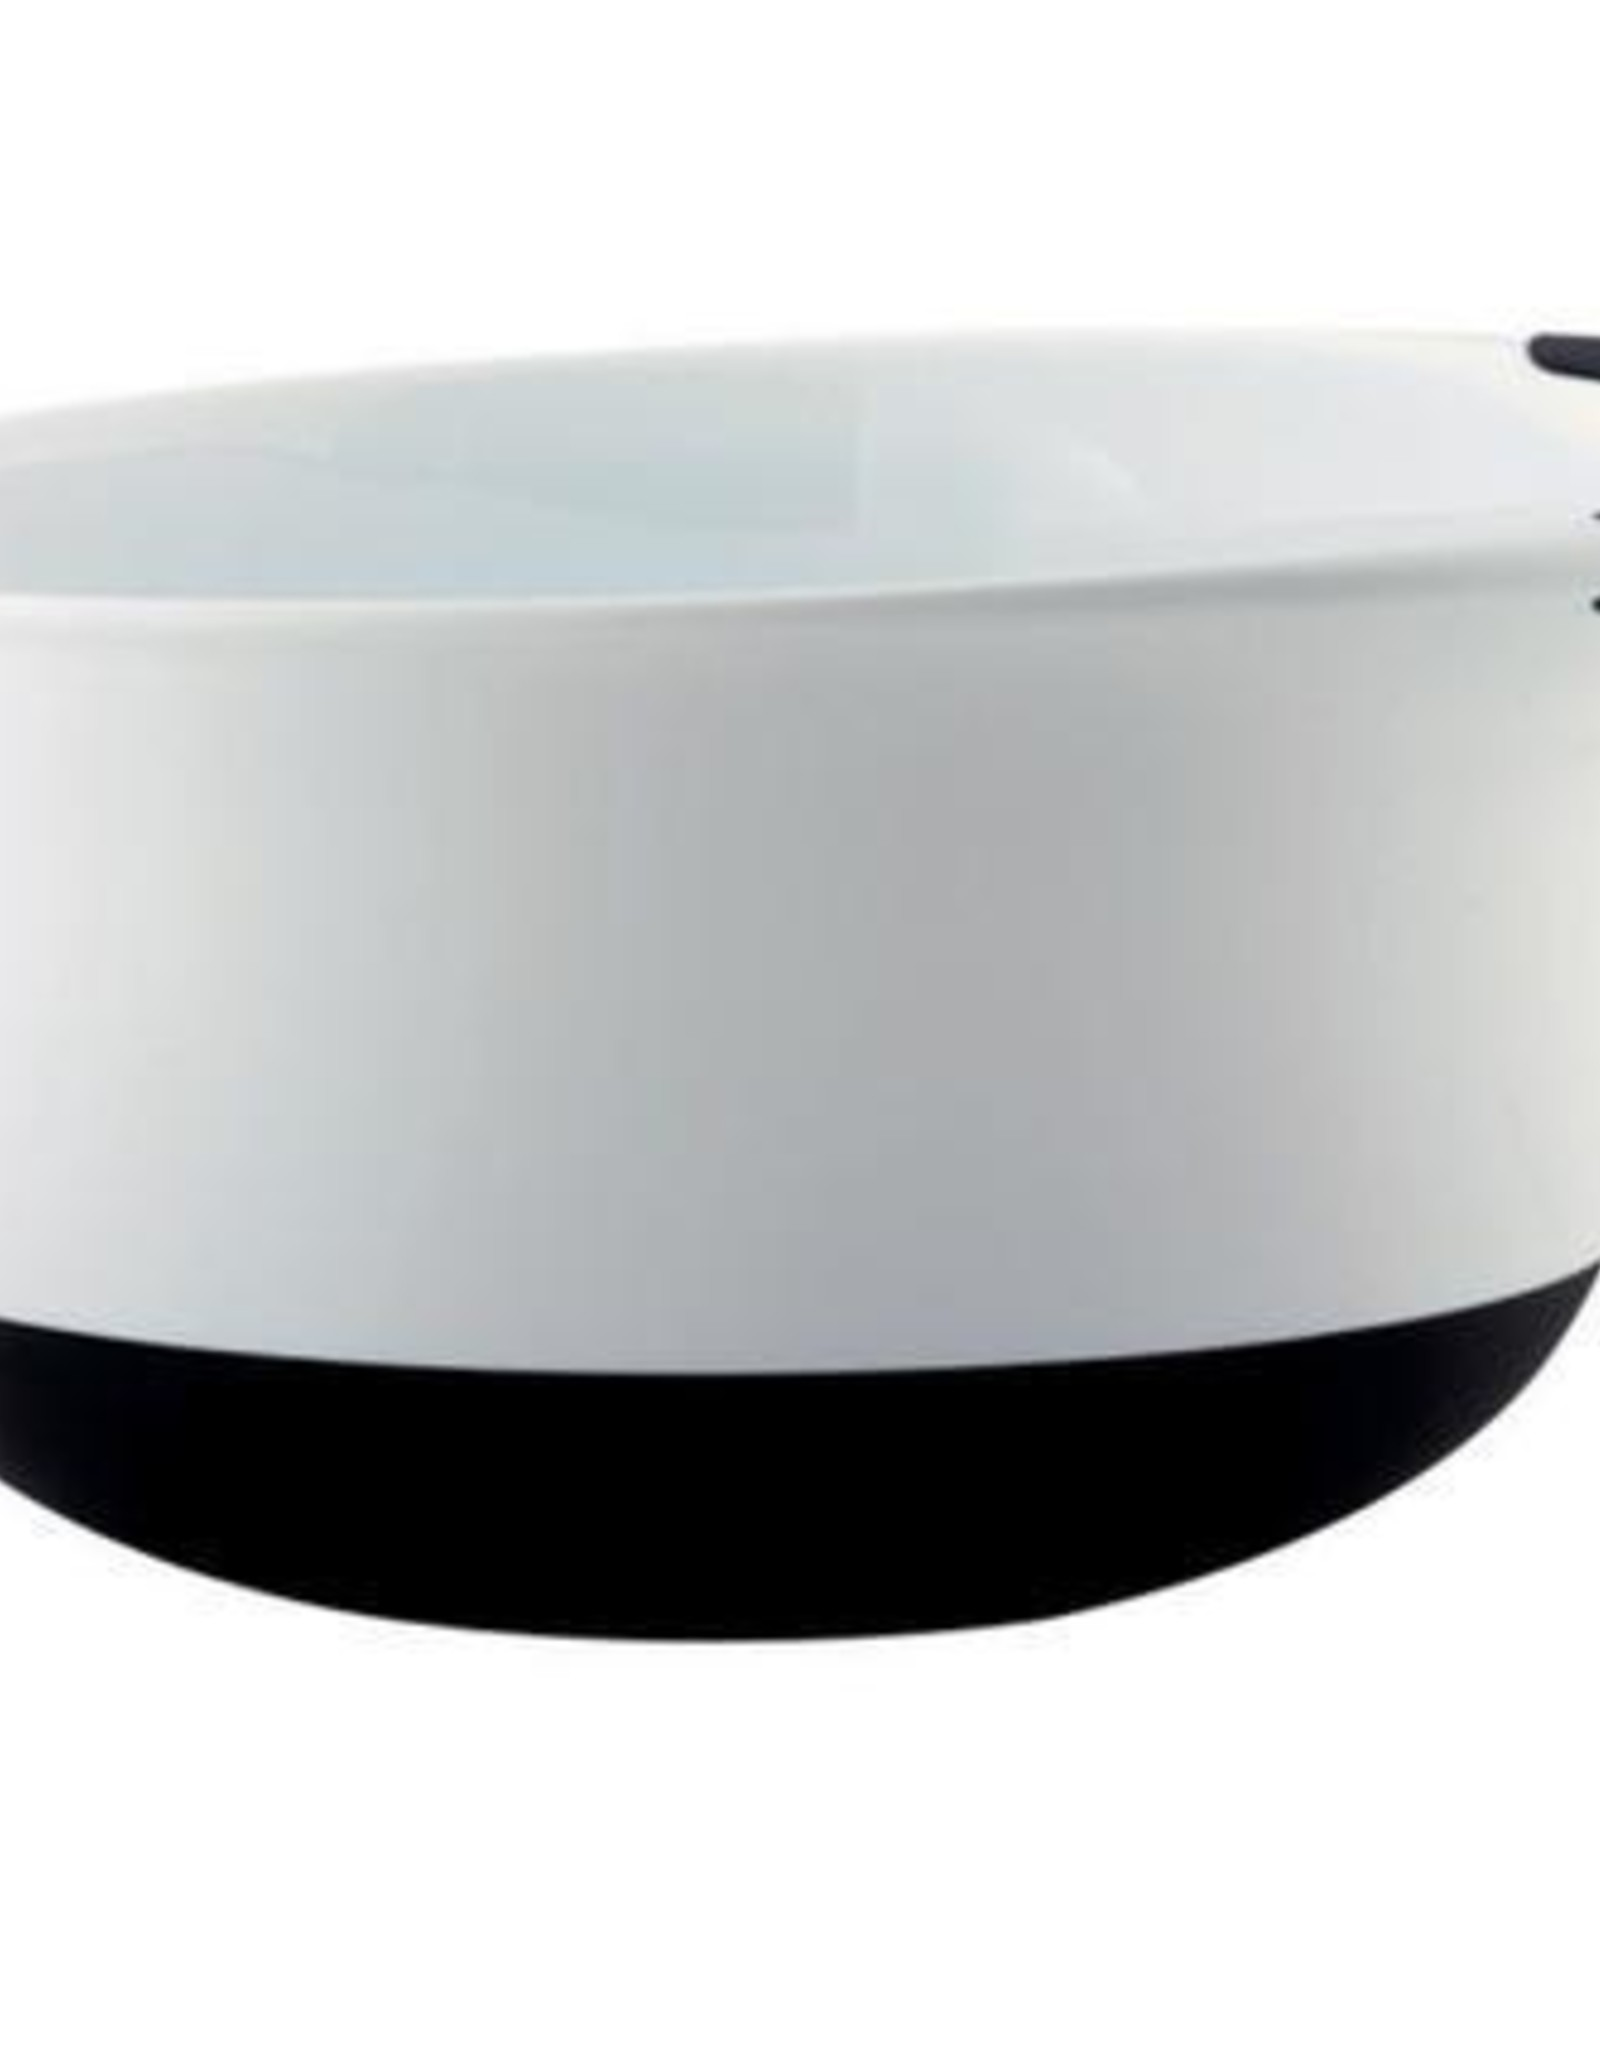 OXO OXO Mixing Bowl w/Rubber Bottom, 4.5L